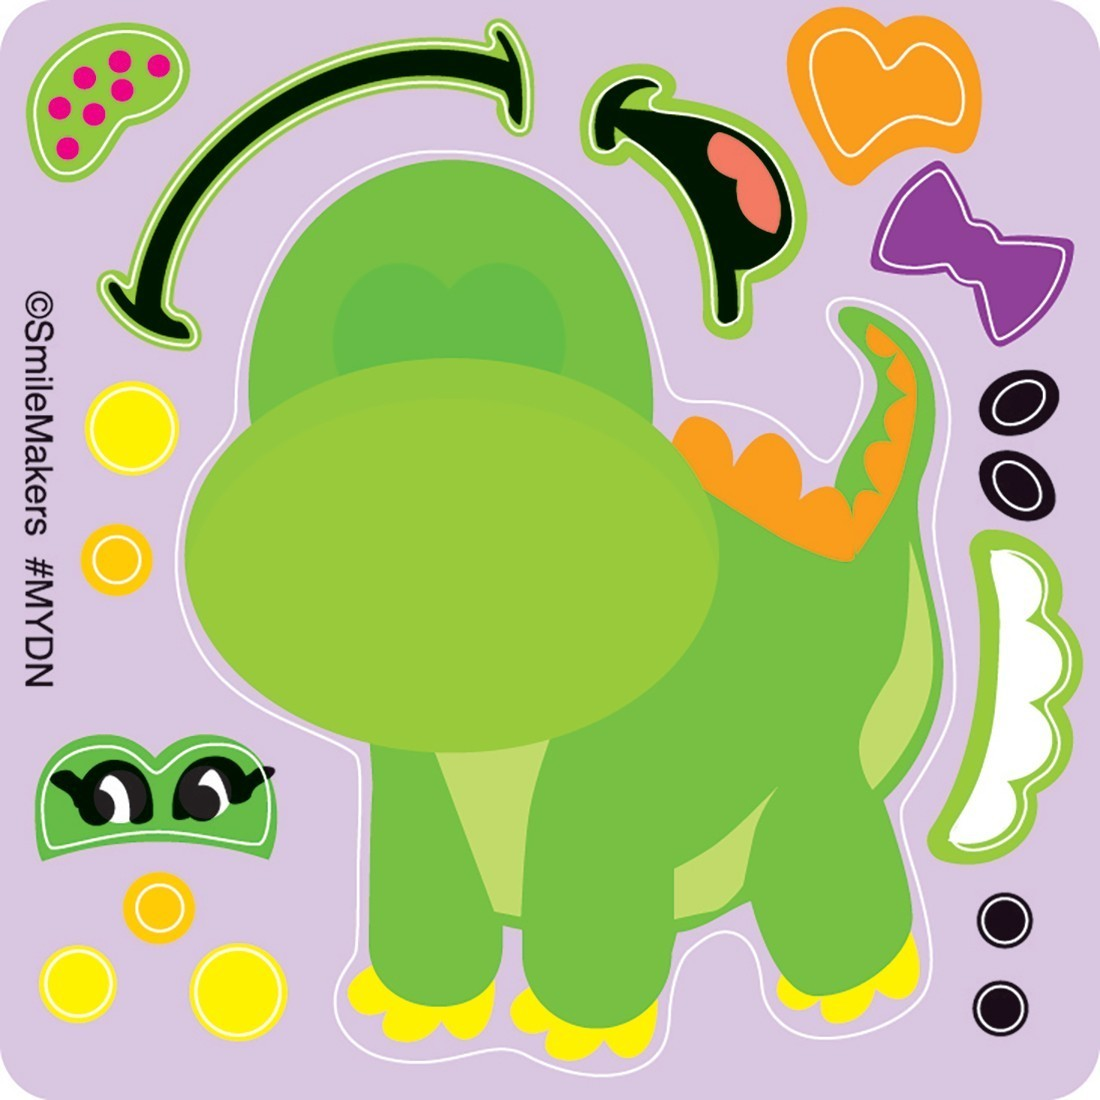 Make-Your-Own™ Dino Stickers                  [image]